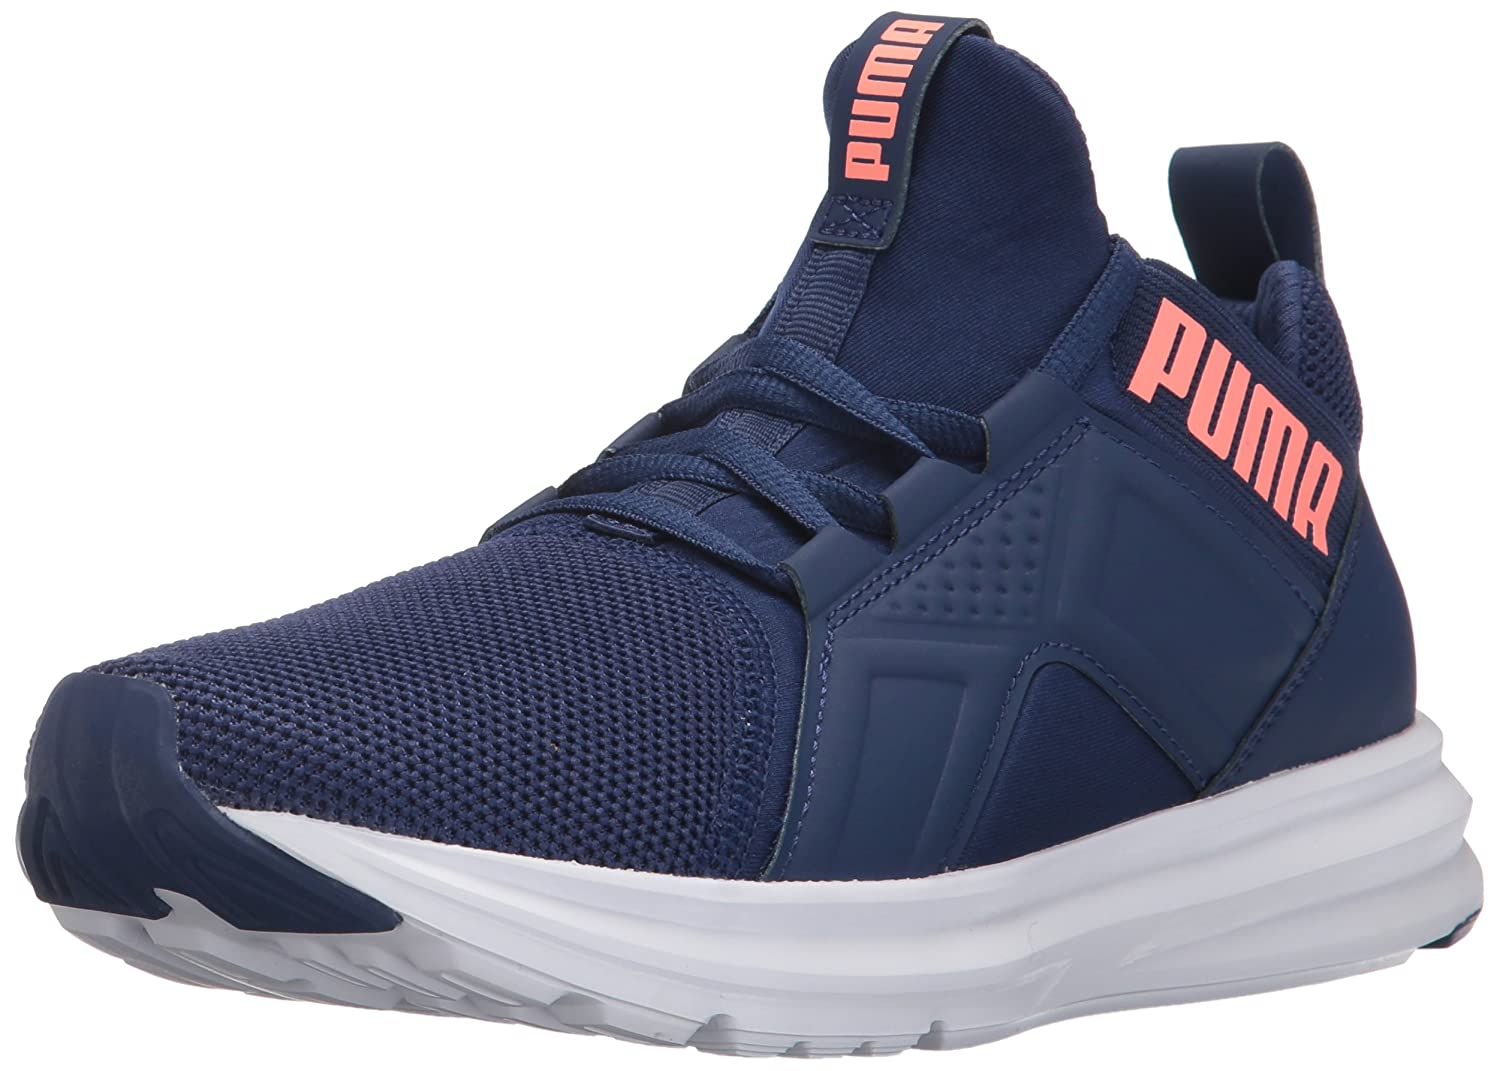 PUMA Women's Enzo Mesh Wn Sneaker B01MQXQMHL 10.5 M US|Blue Depths-nrgy Peach